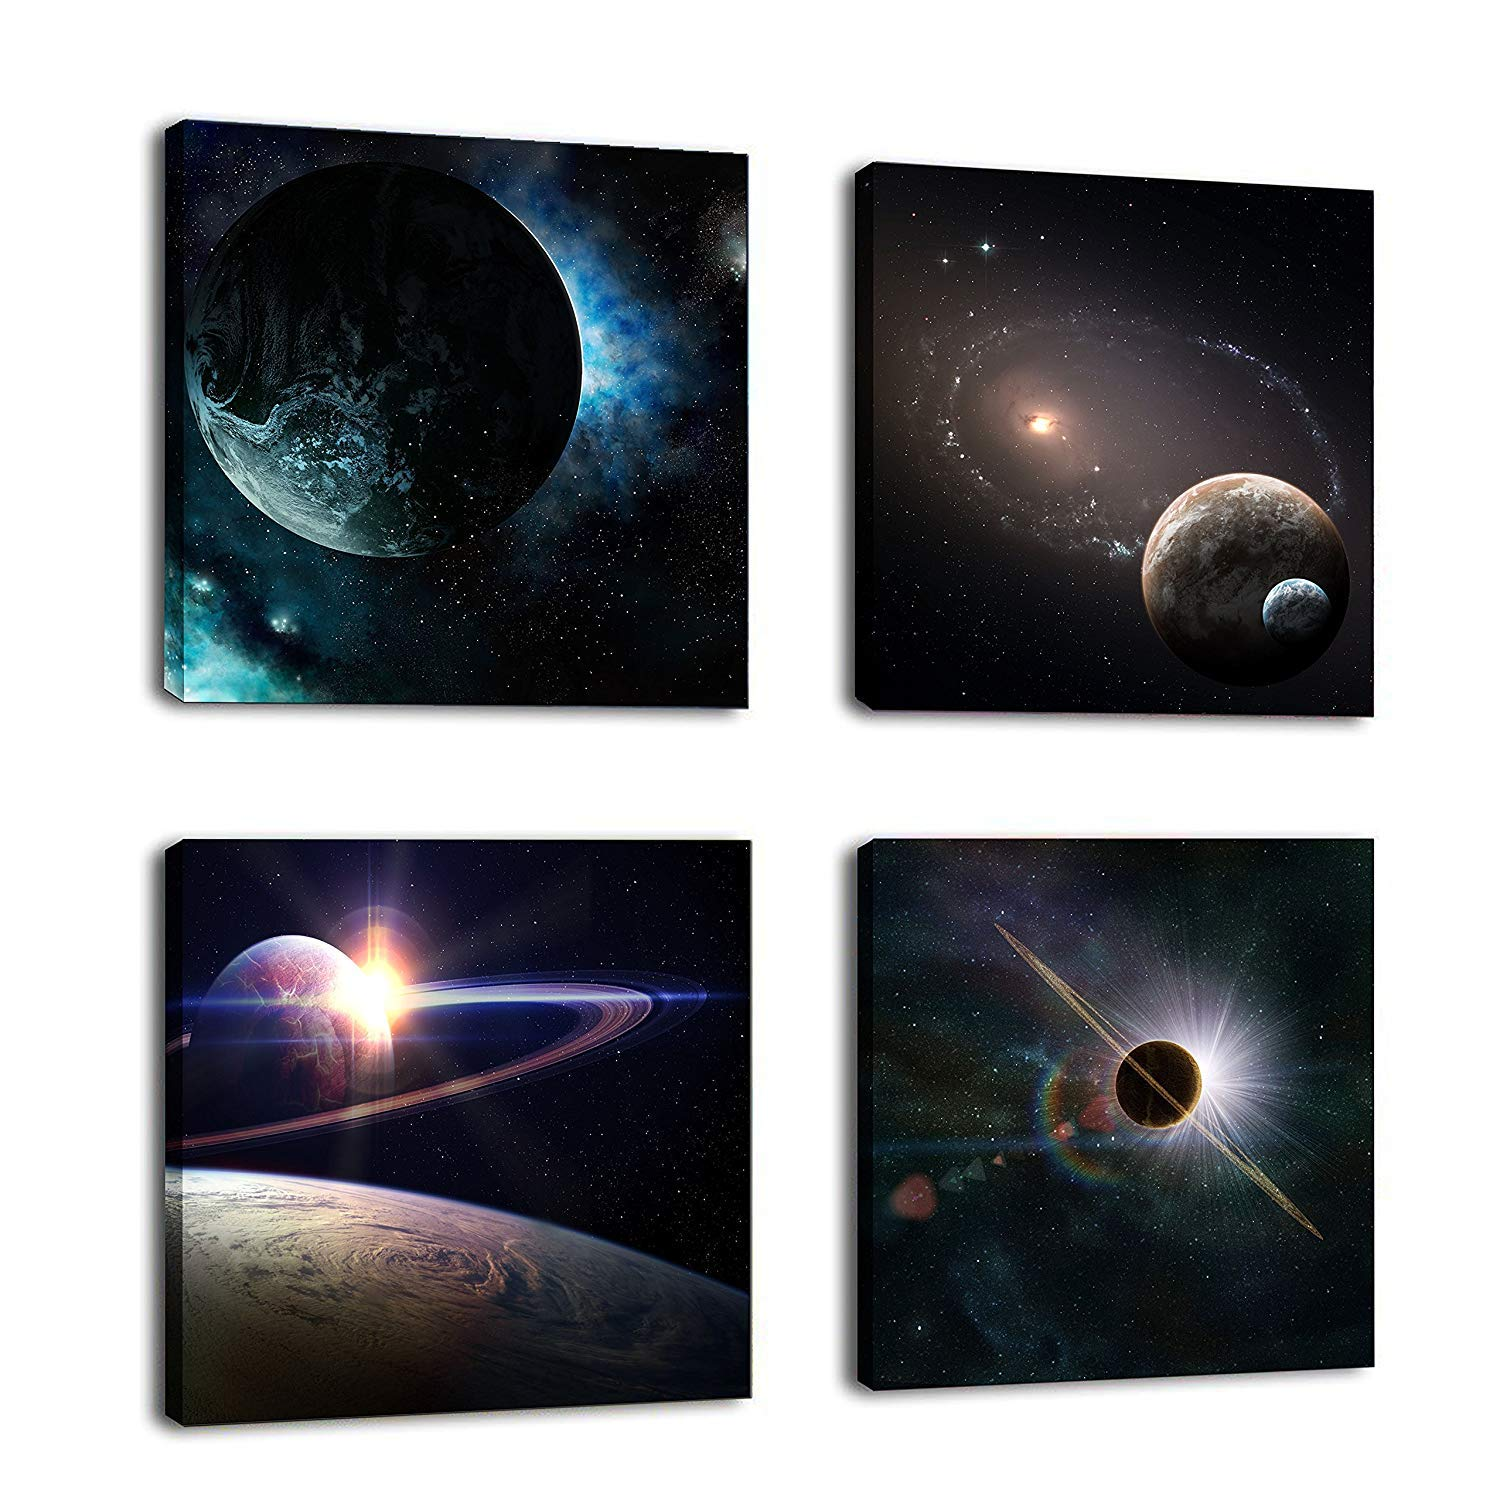 CUFUN Art - Vast Starry Sky Galaxy Painting Canvas Wall Art for Home Decor Ready to Hang Pictures (30 x 30cm x 3pcs)